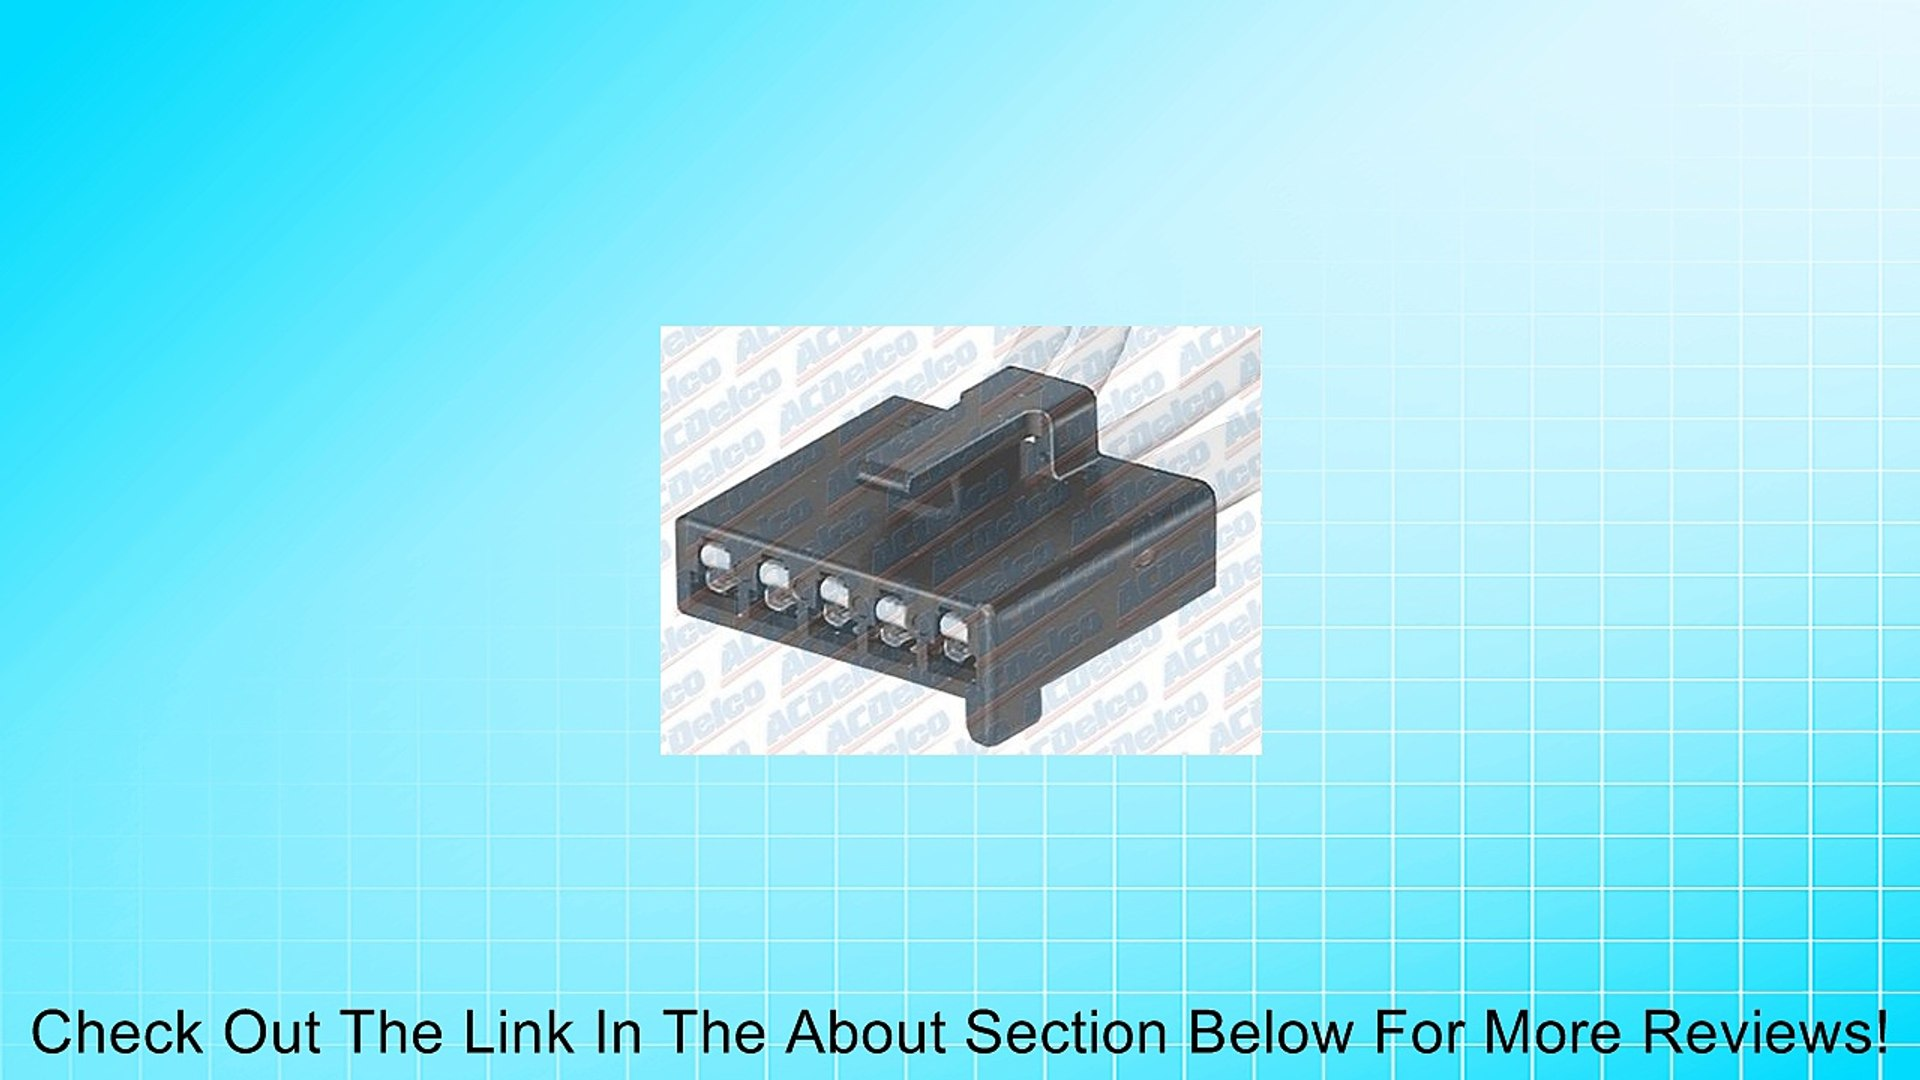 AC Delco PT795 AC & Heater Control Connector Review